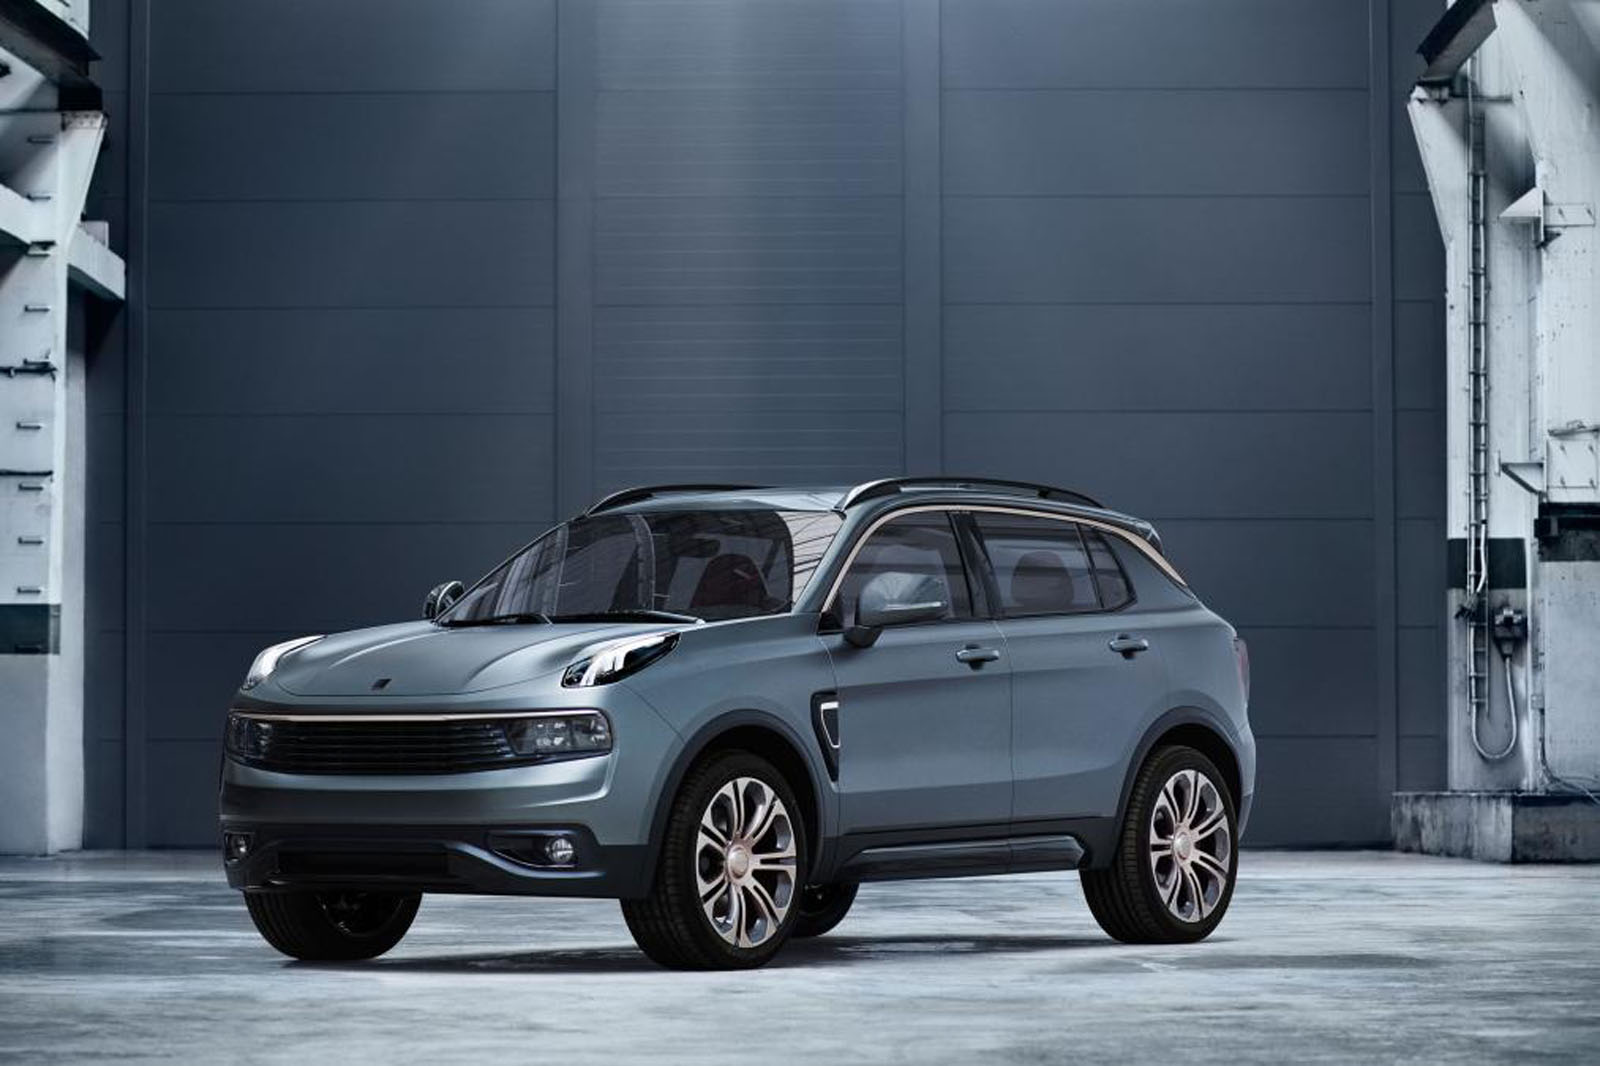 New Chinese Automaker Debuts Hybrid SUV That Could Be Headed to US ...